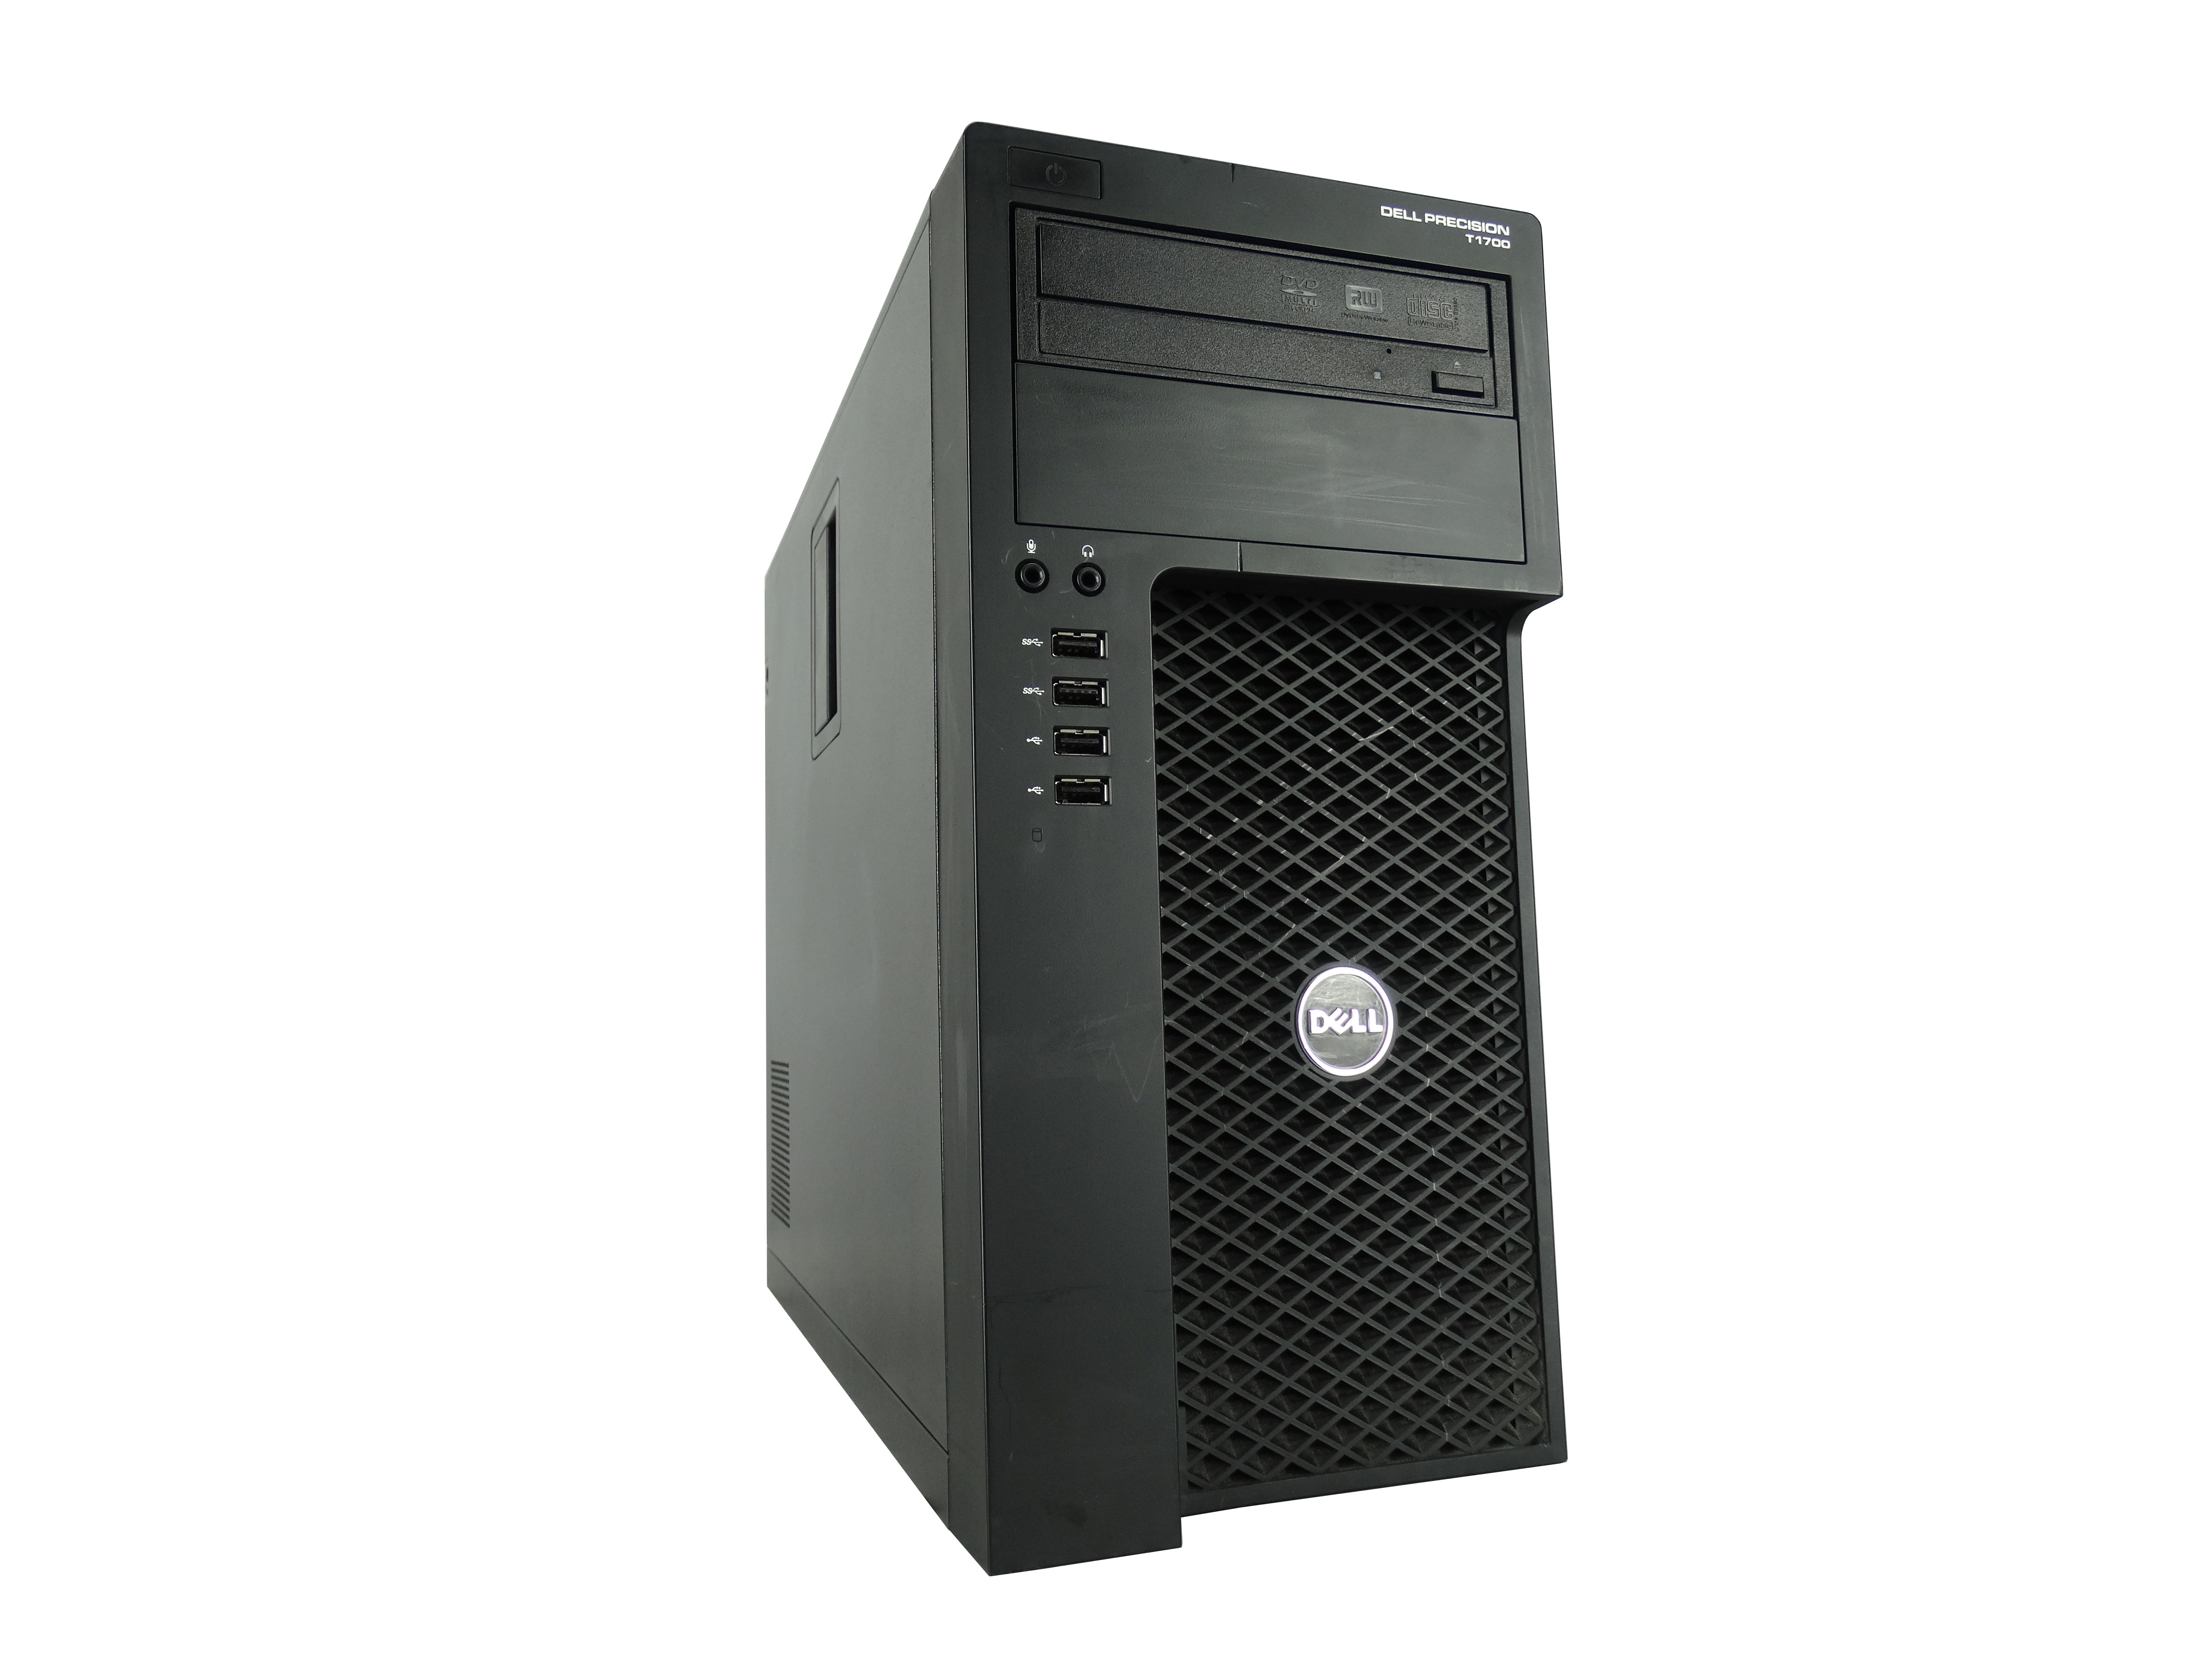 Dell Precision T1700 Desktop Workstation